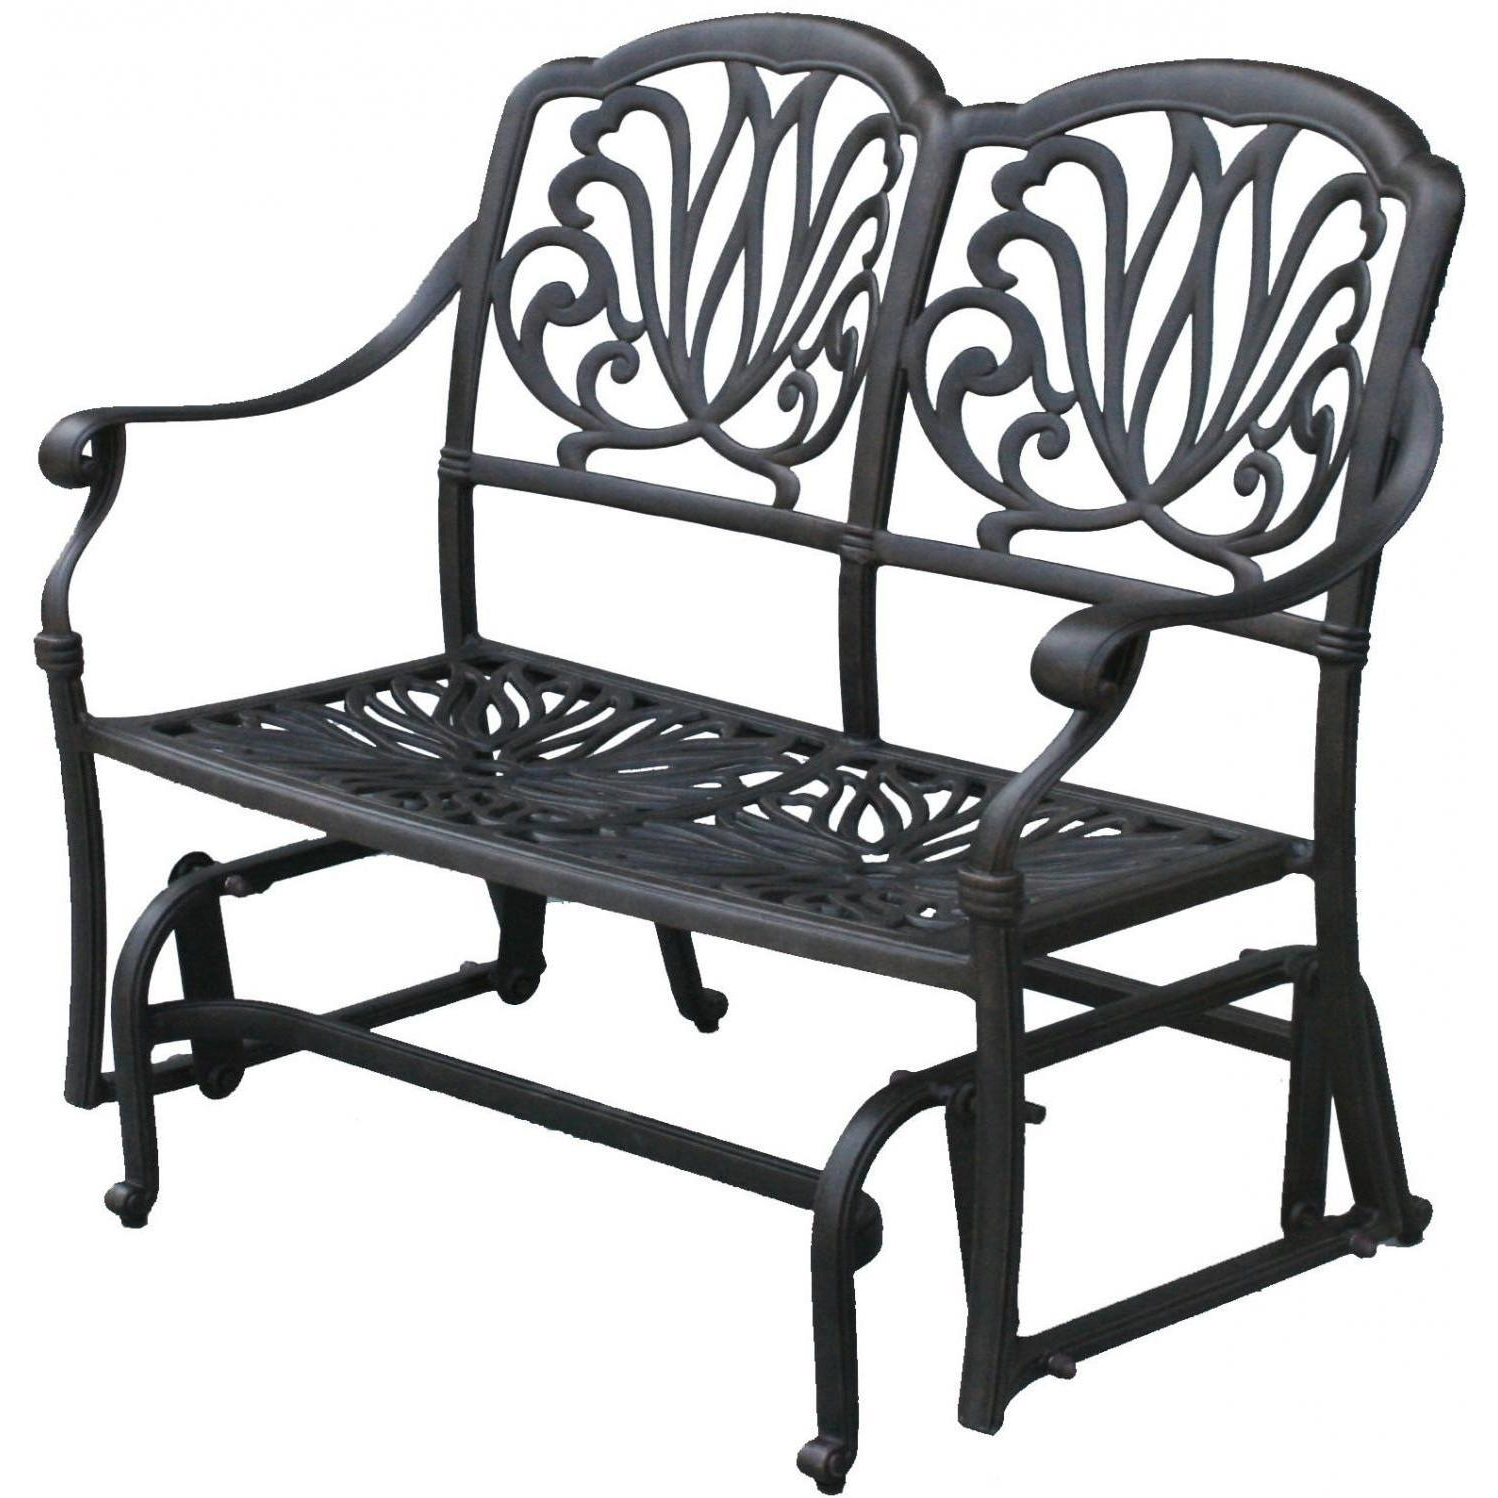 Widely Used Aluminum Glider Benches With Cushion Pertaining To Darlee Elisabeth Cast Aluminum Patio Bench Glider (Gallery 2 of 30)